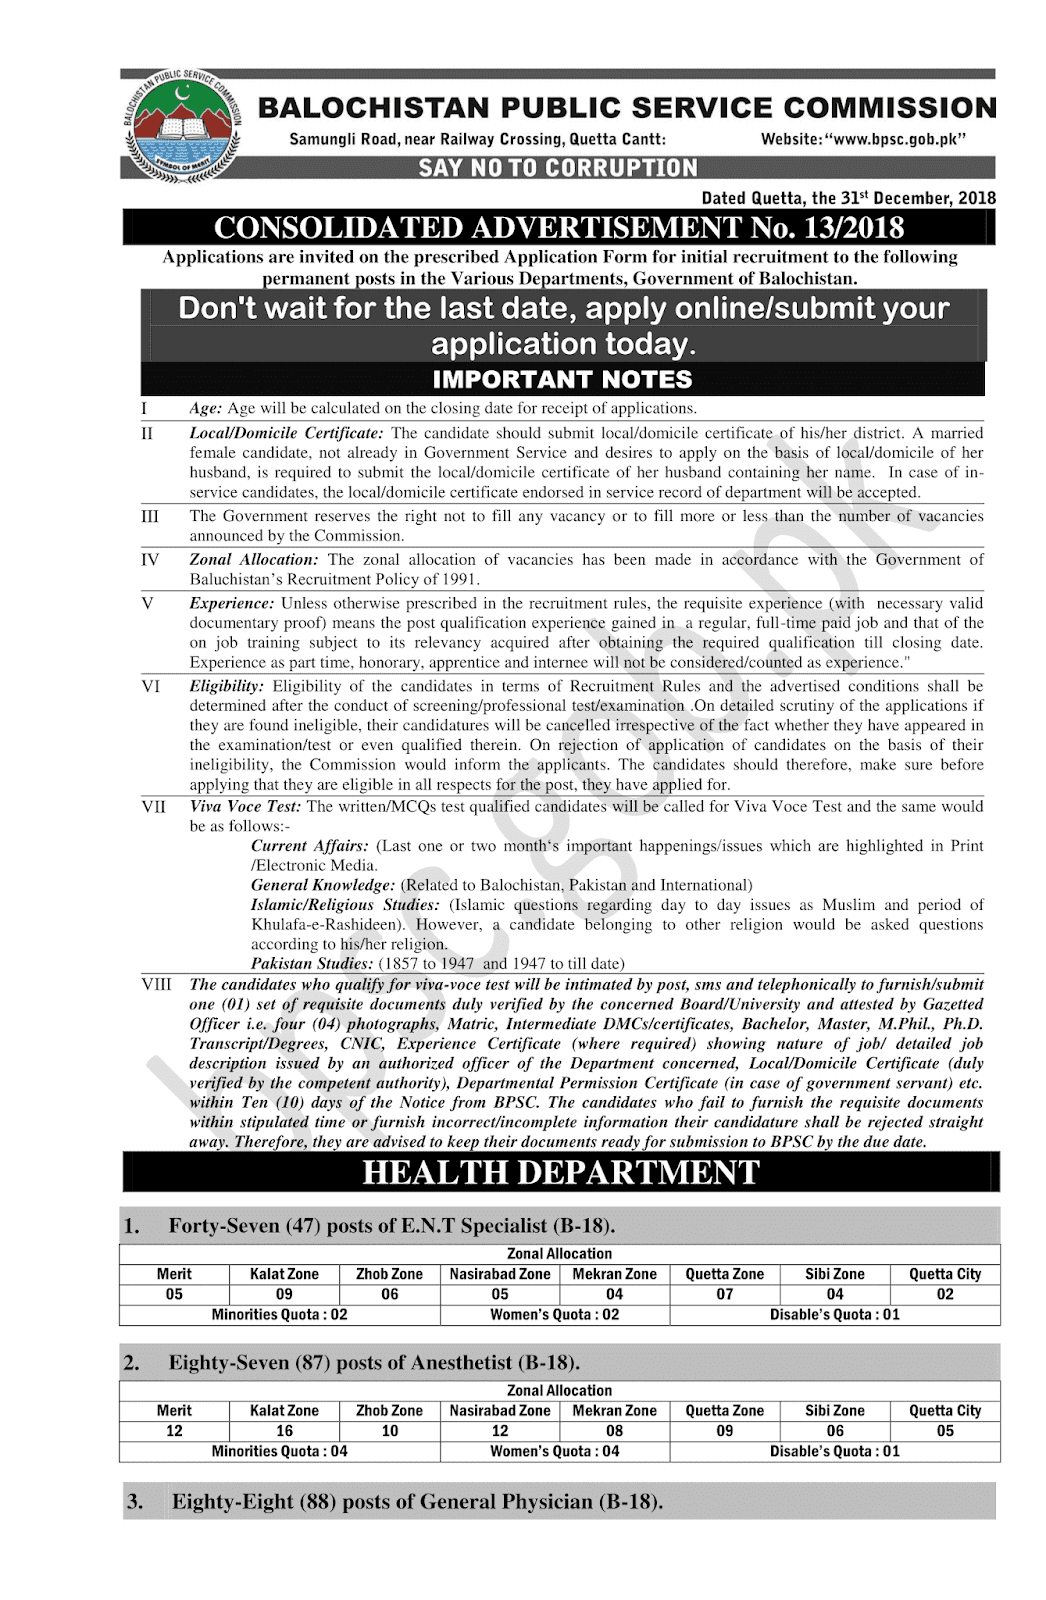 BPSC Advertisement 13/2018 Page No. 1/6